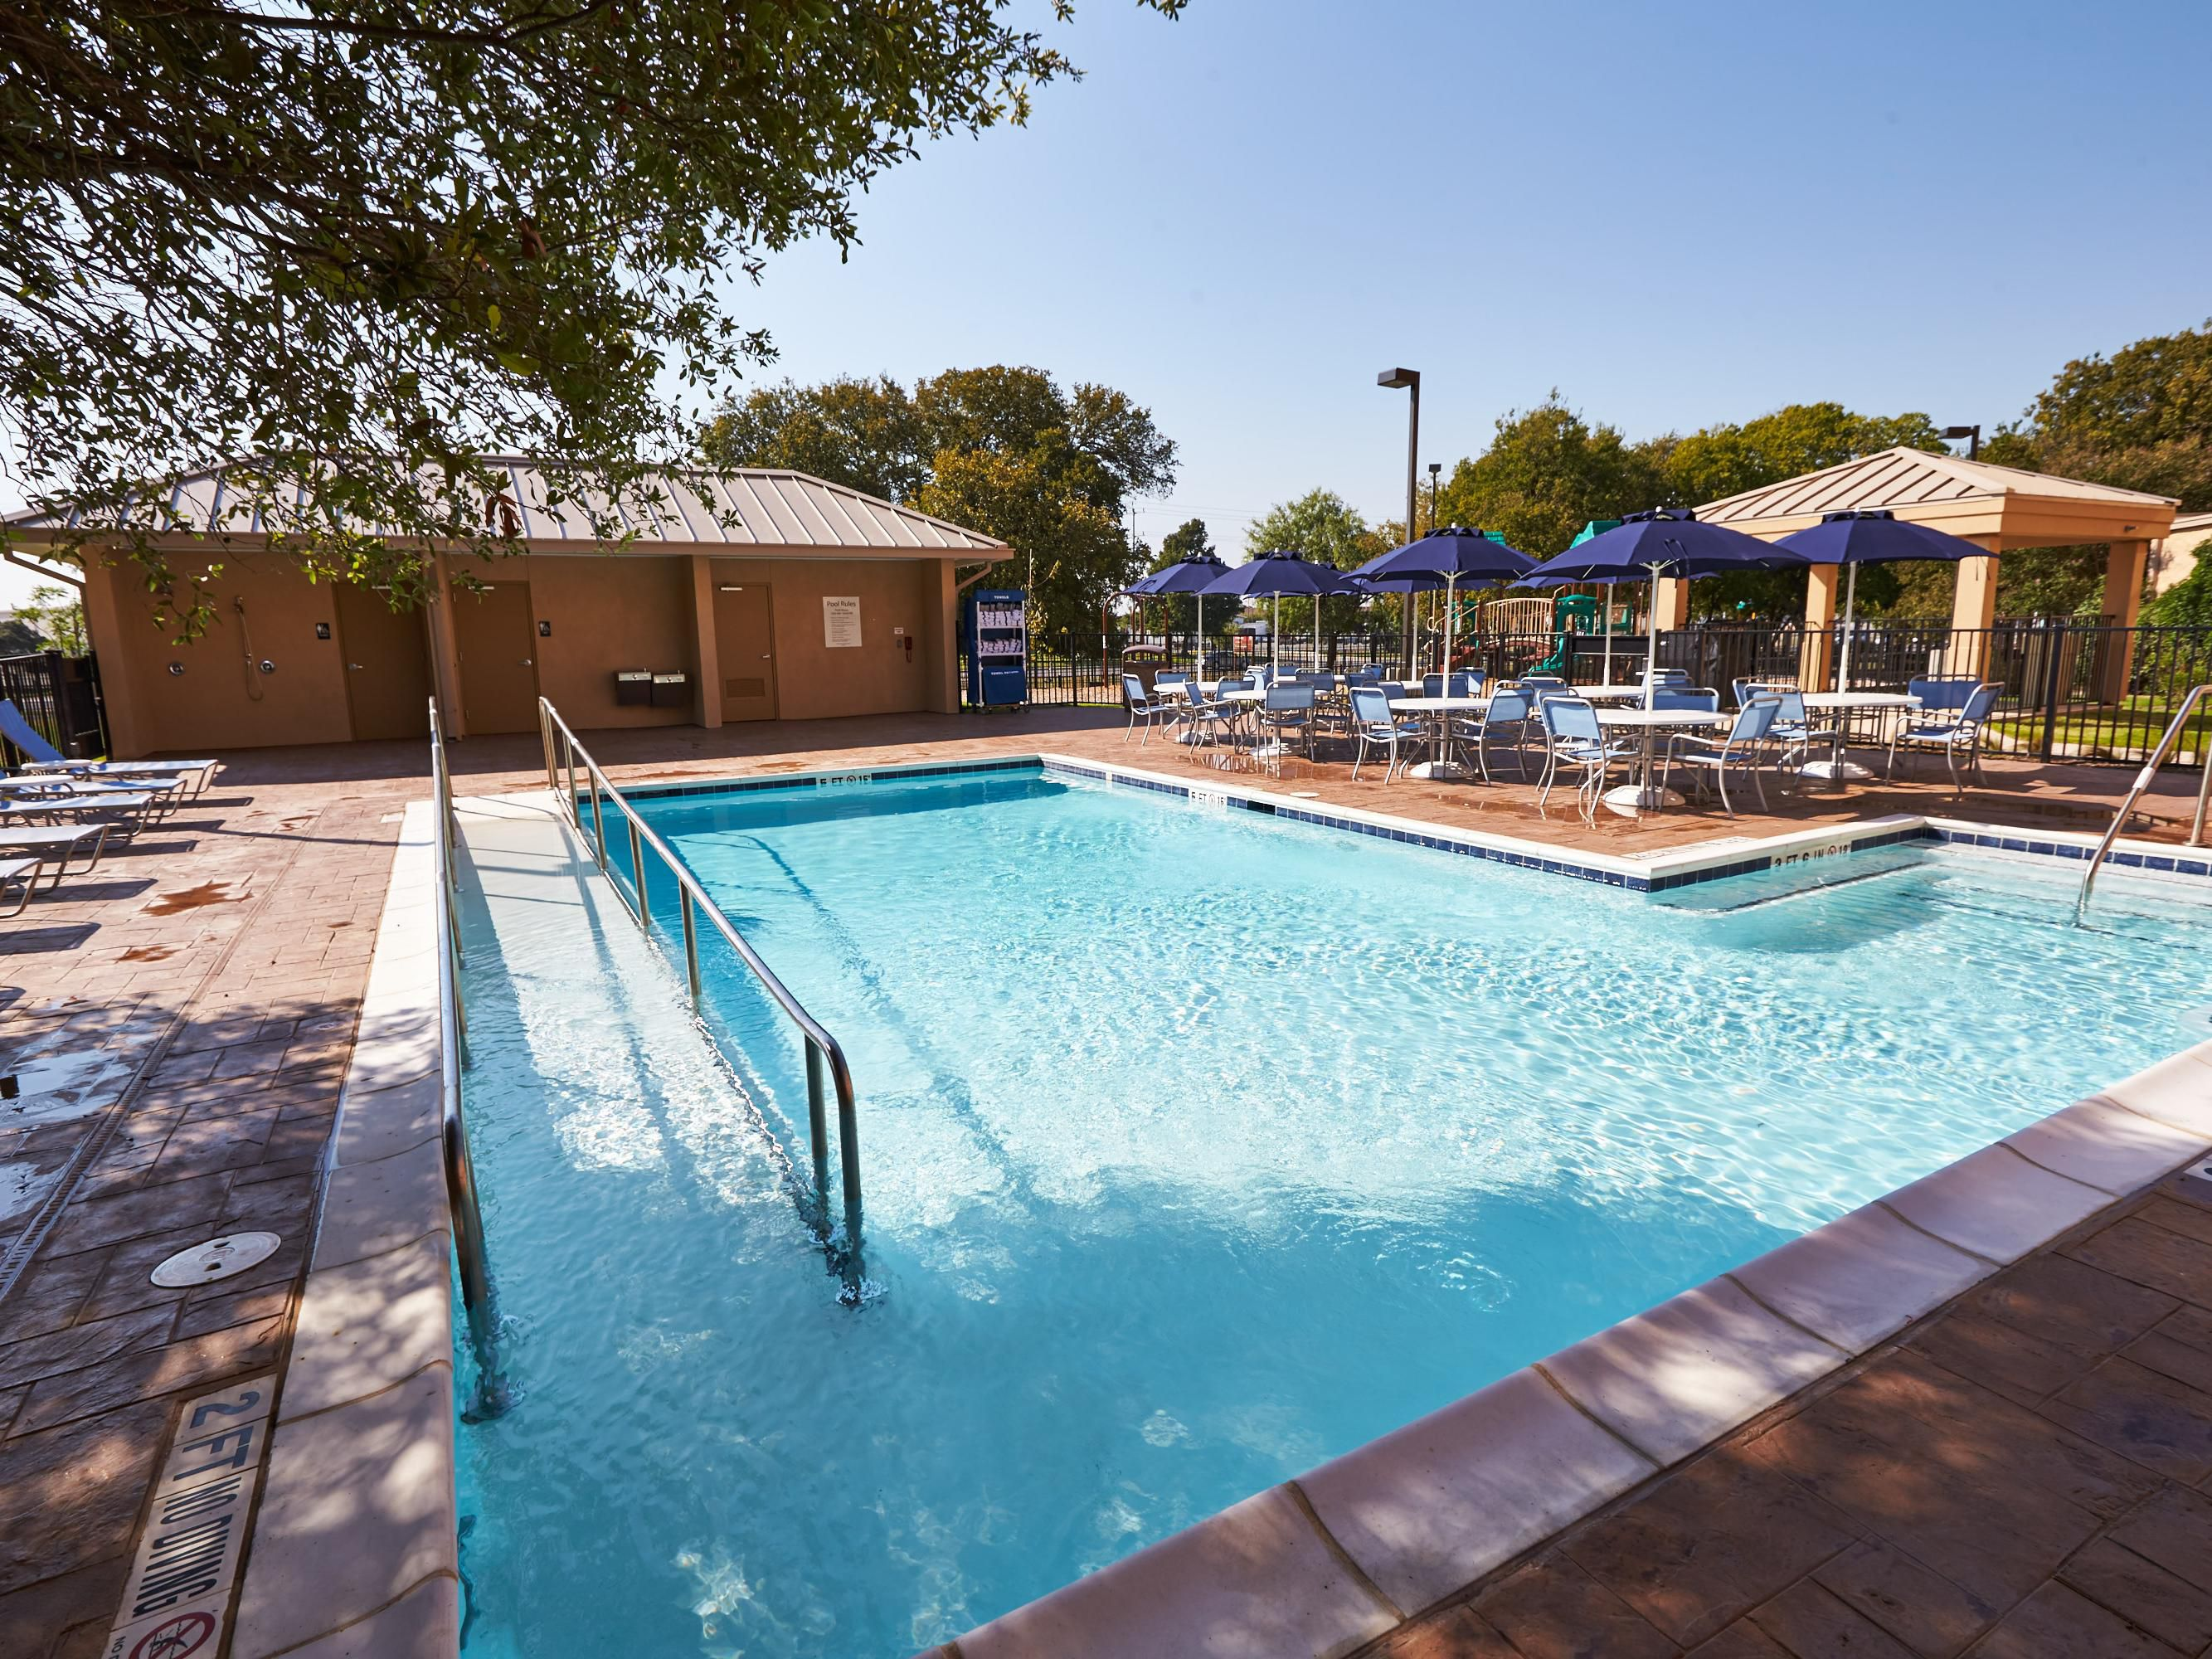 Ihg Army Hotels At Ft Sam Houston Powless House Amenities